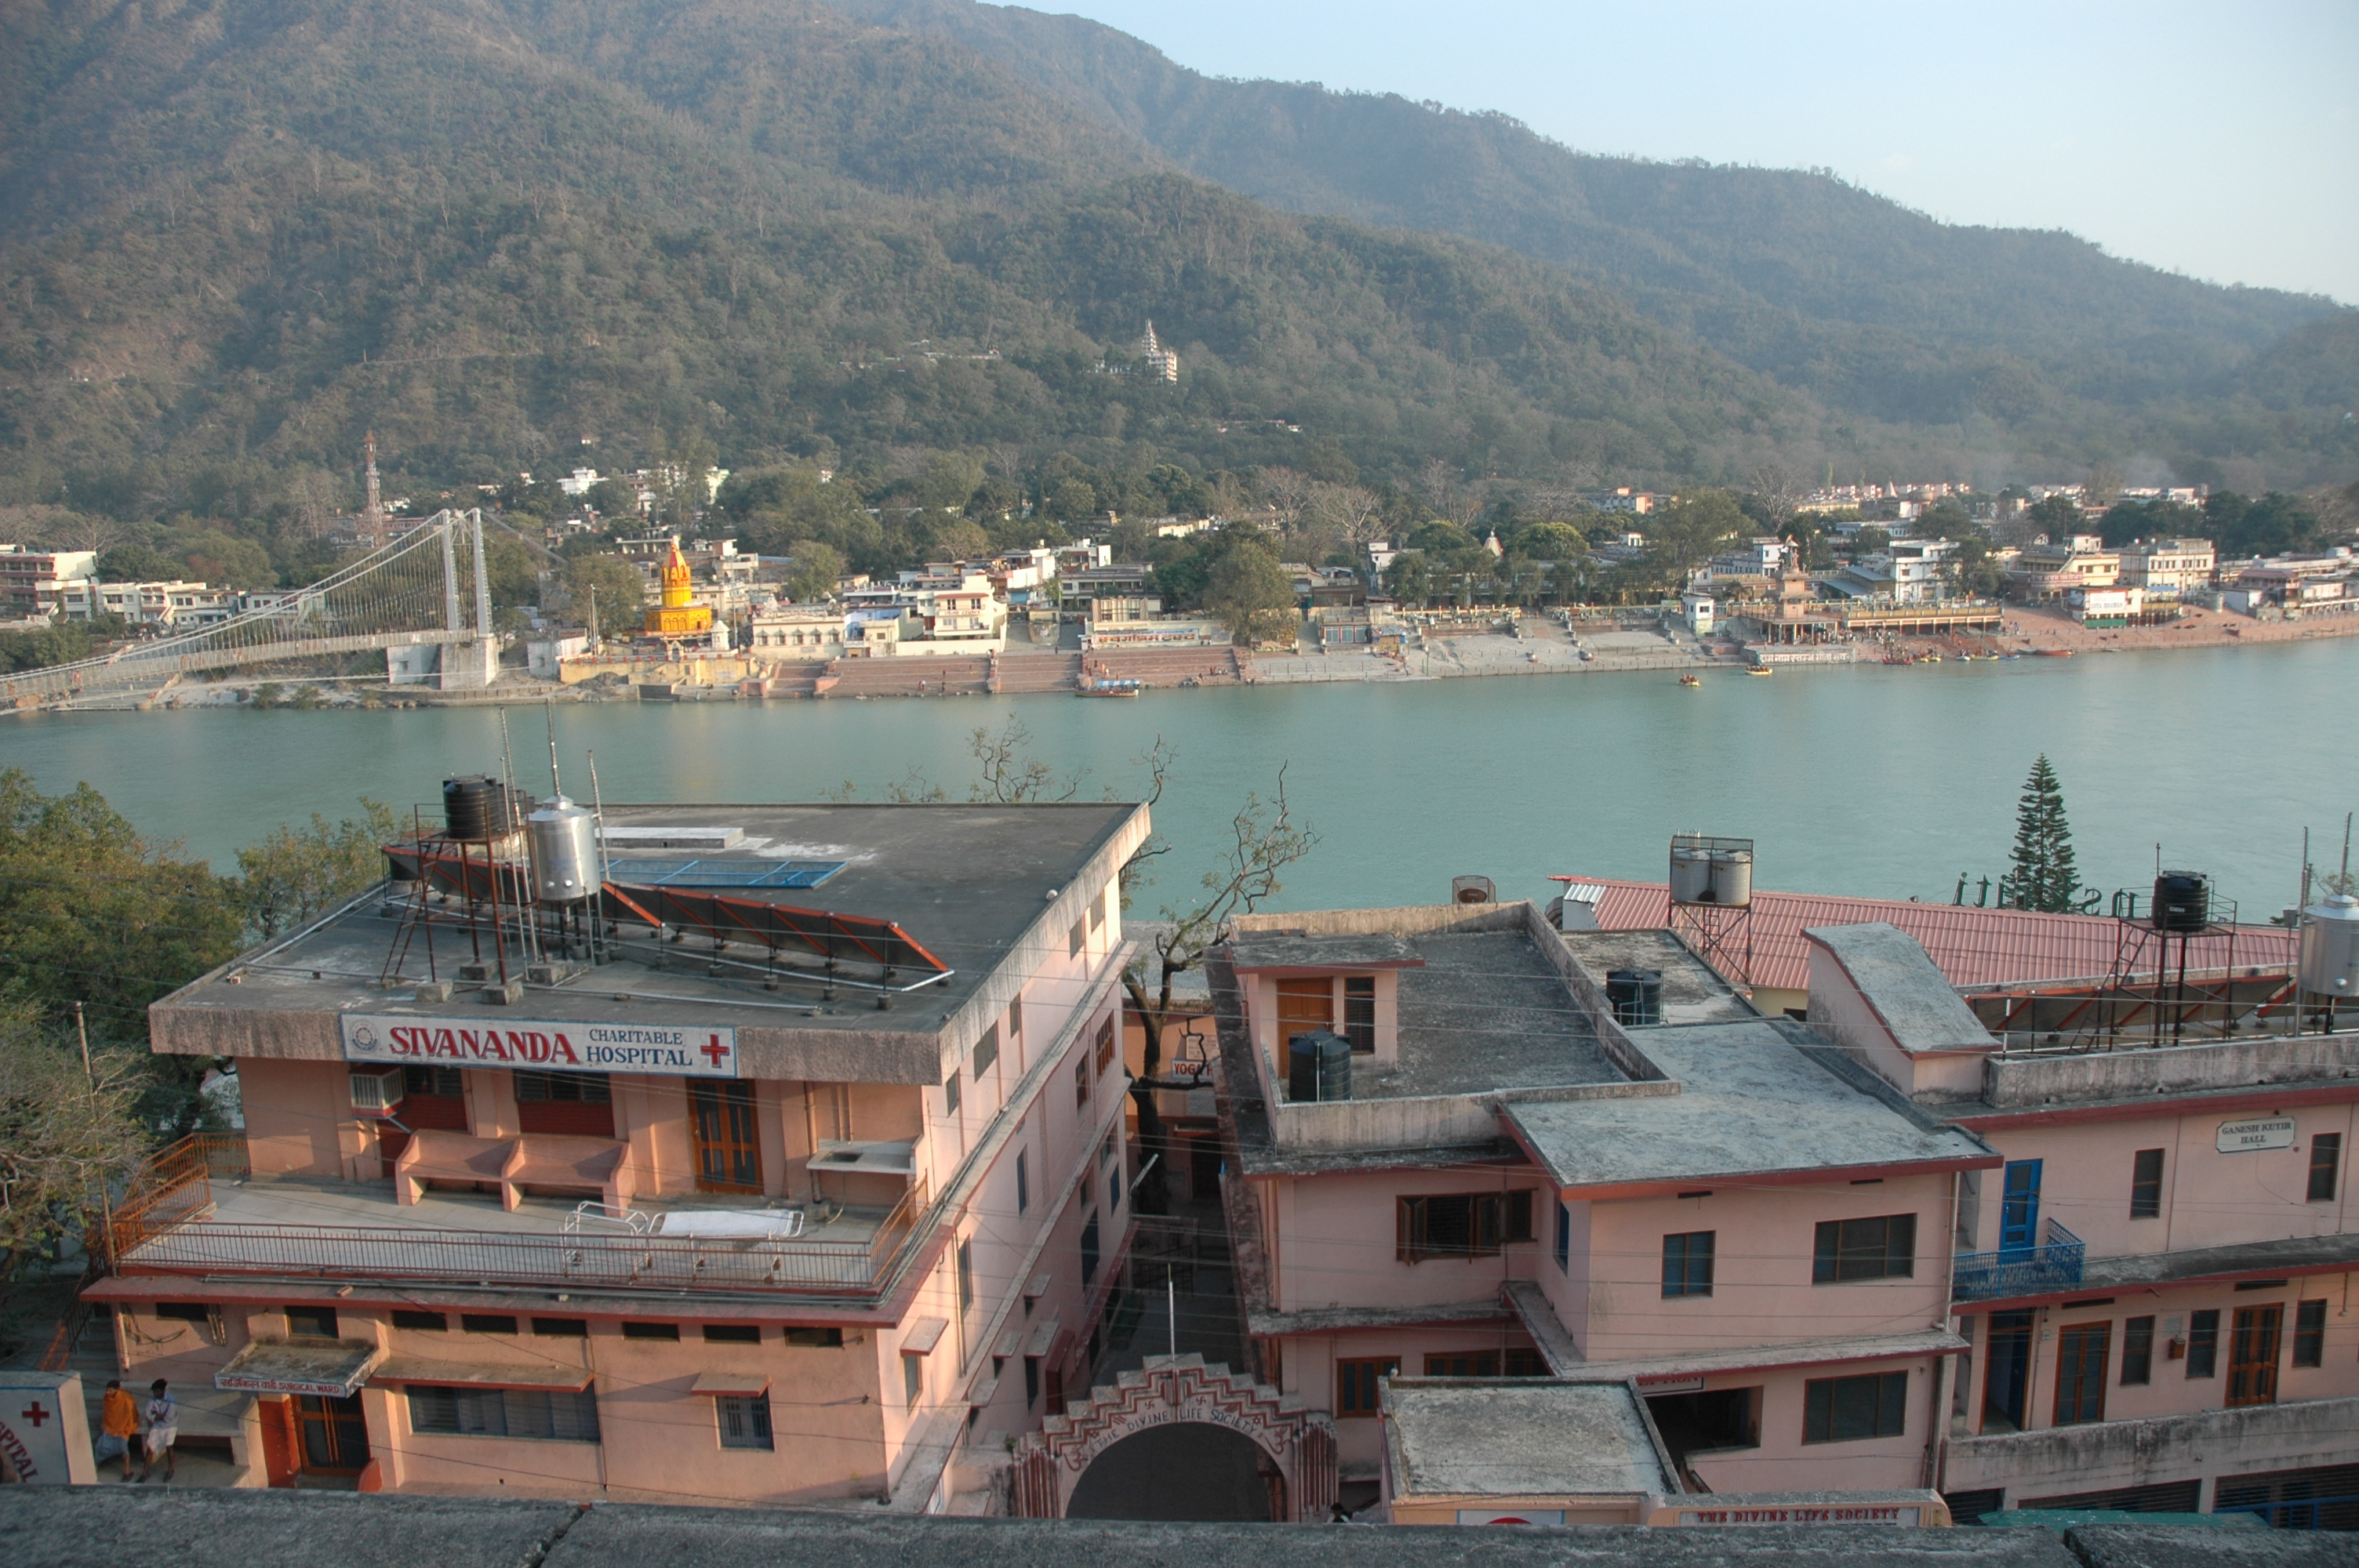 Ganges & Hospital Topview